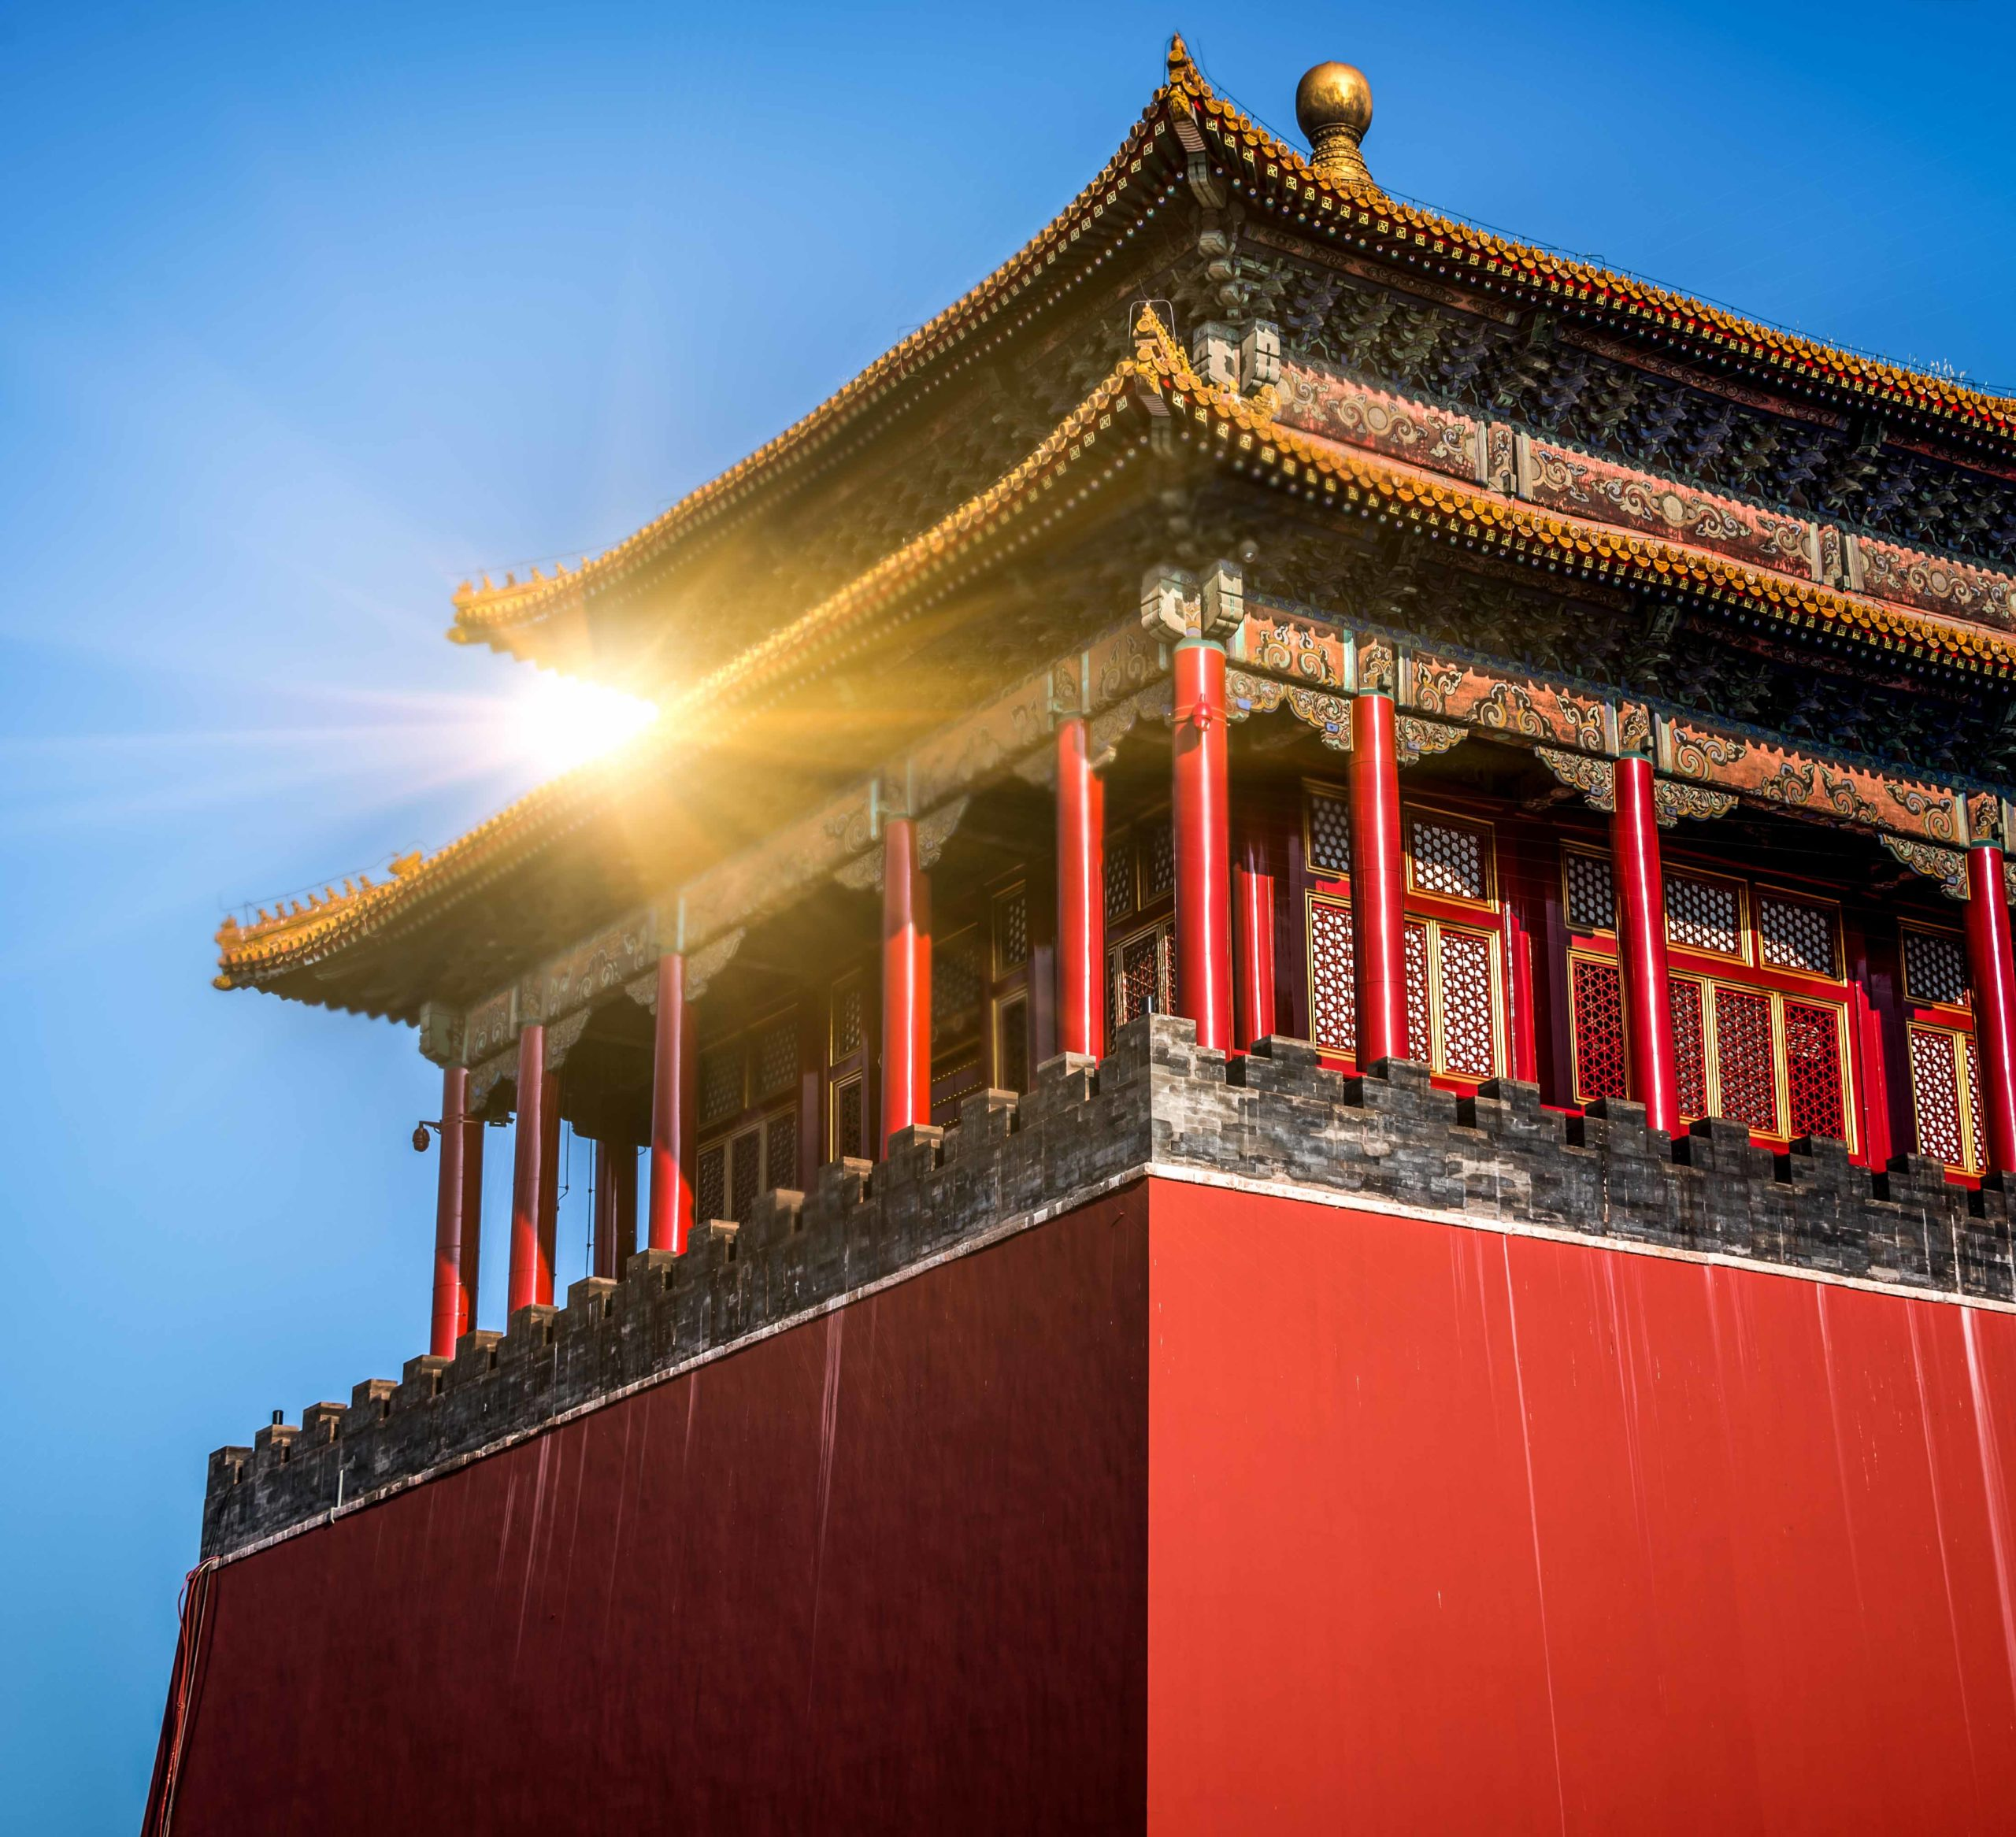 Roof decoration in Forbidden City of Beijing,China.